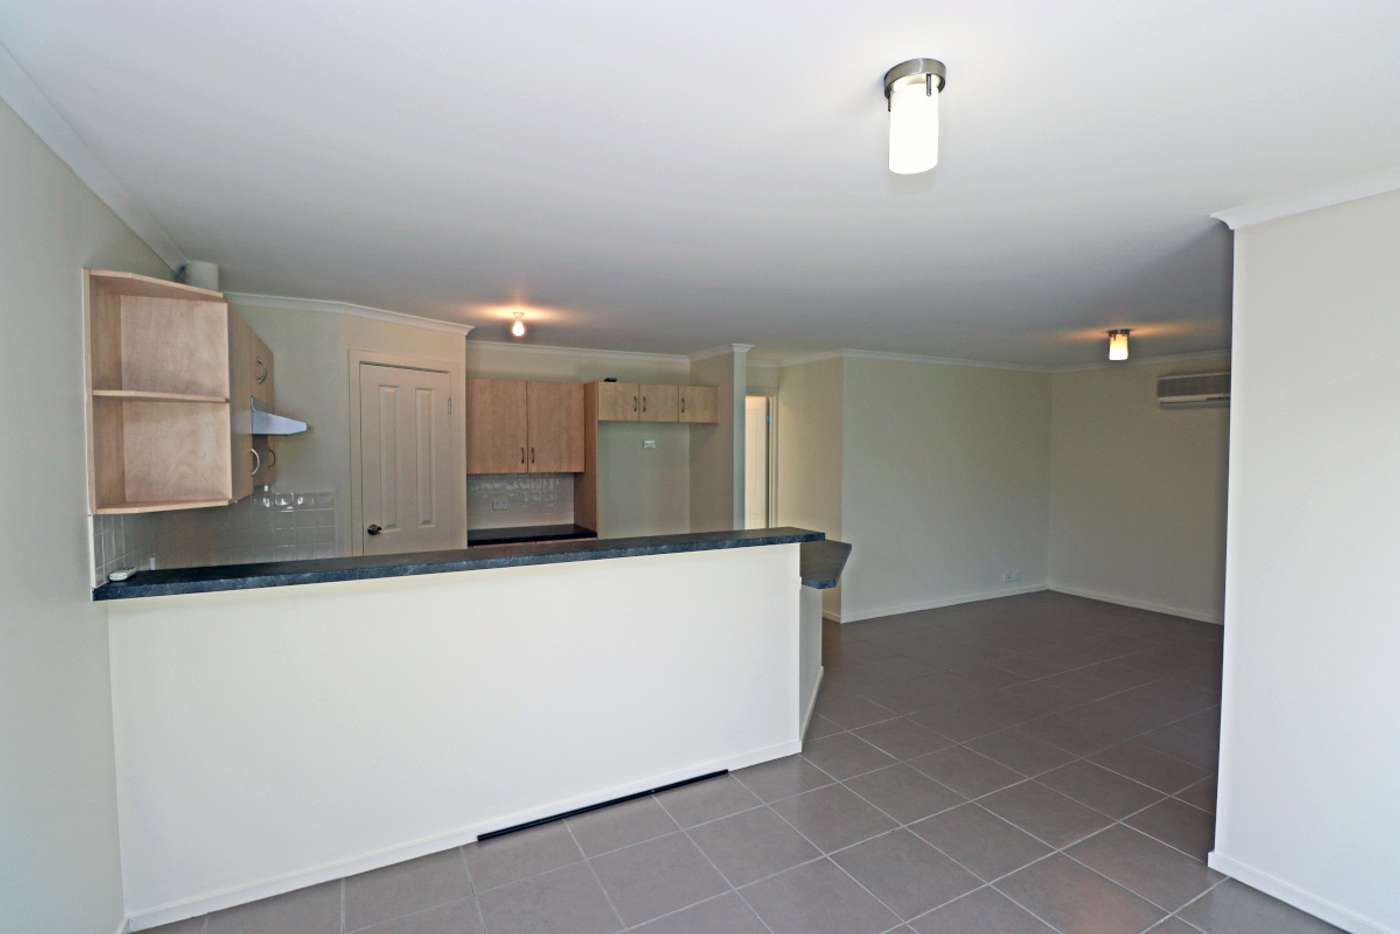 Fifth view of Homely house listing, 5A Inverell Avenue, Sturt SA 5047